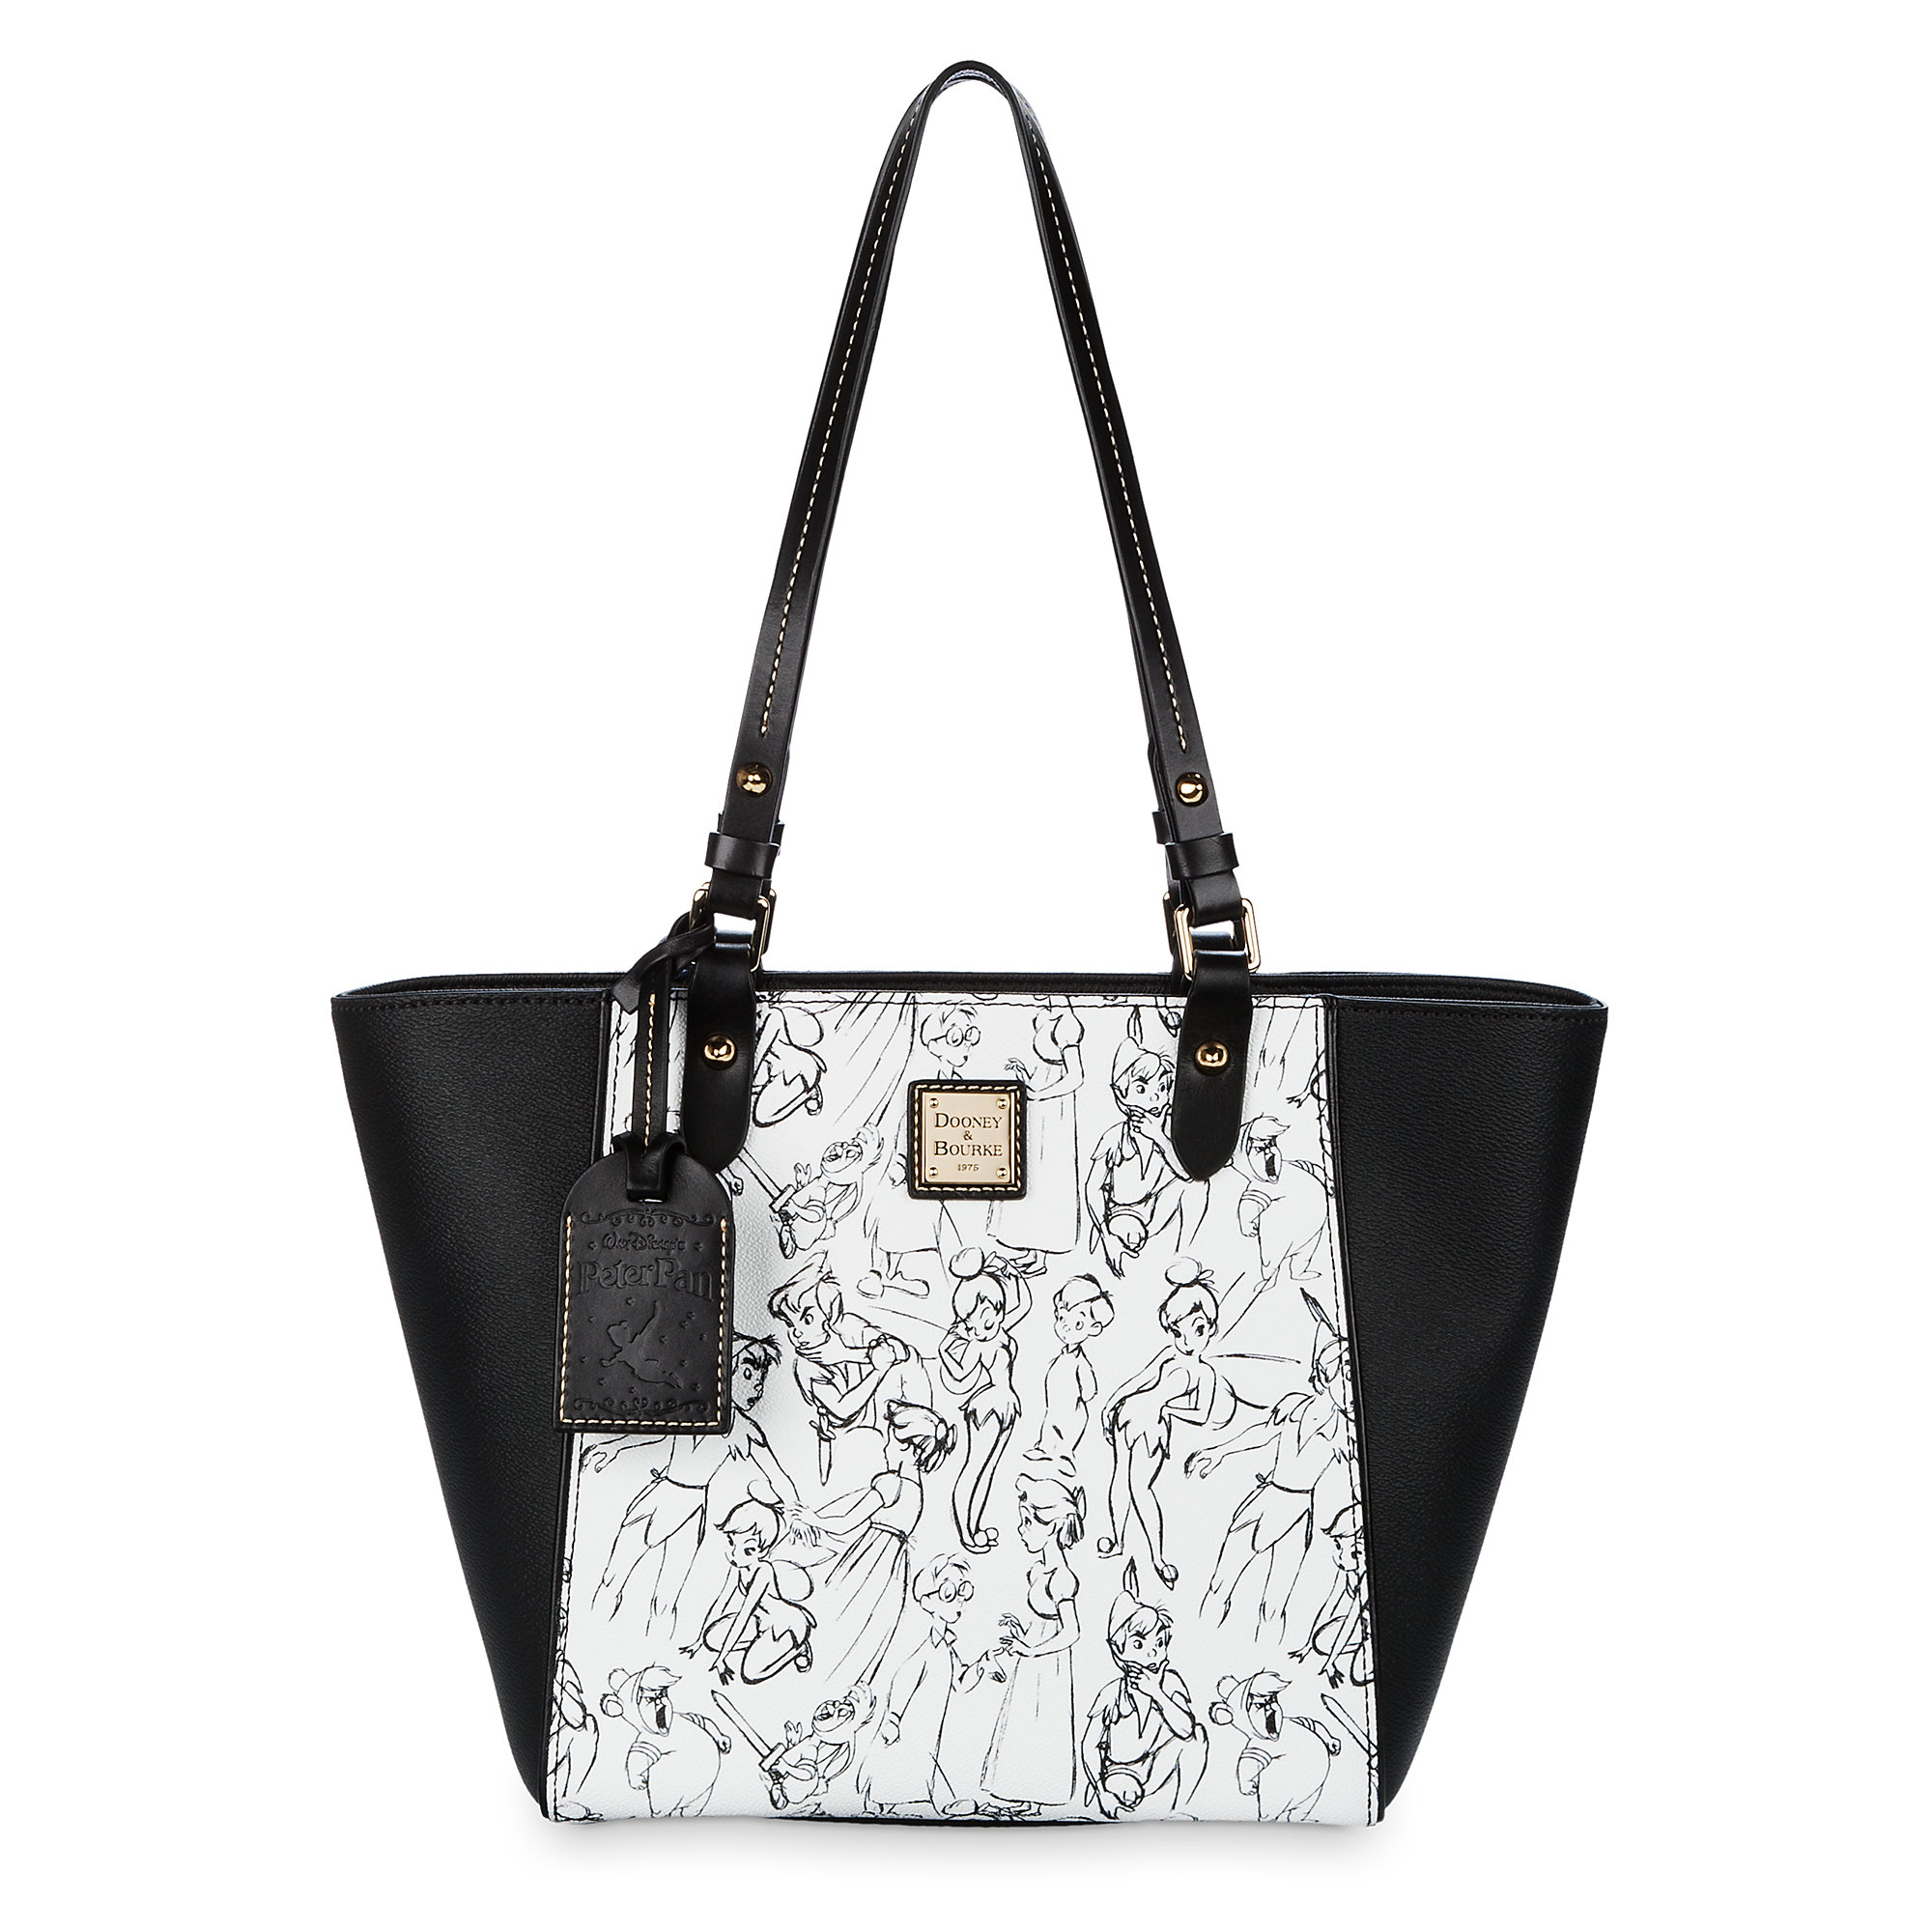 Peter Pan Janie Tote - Dooney & Bourke